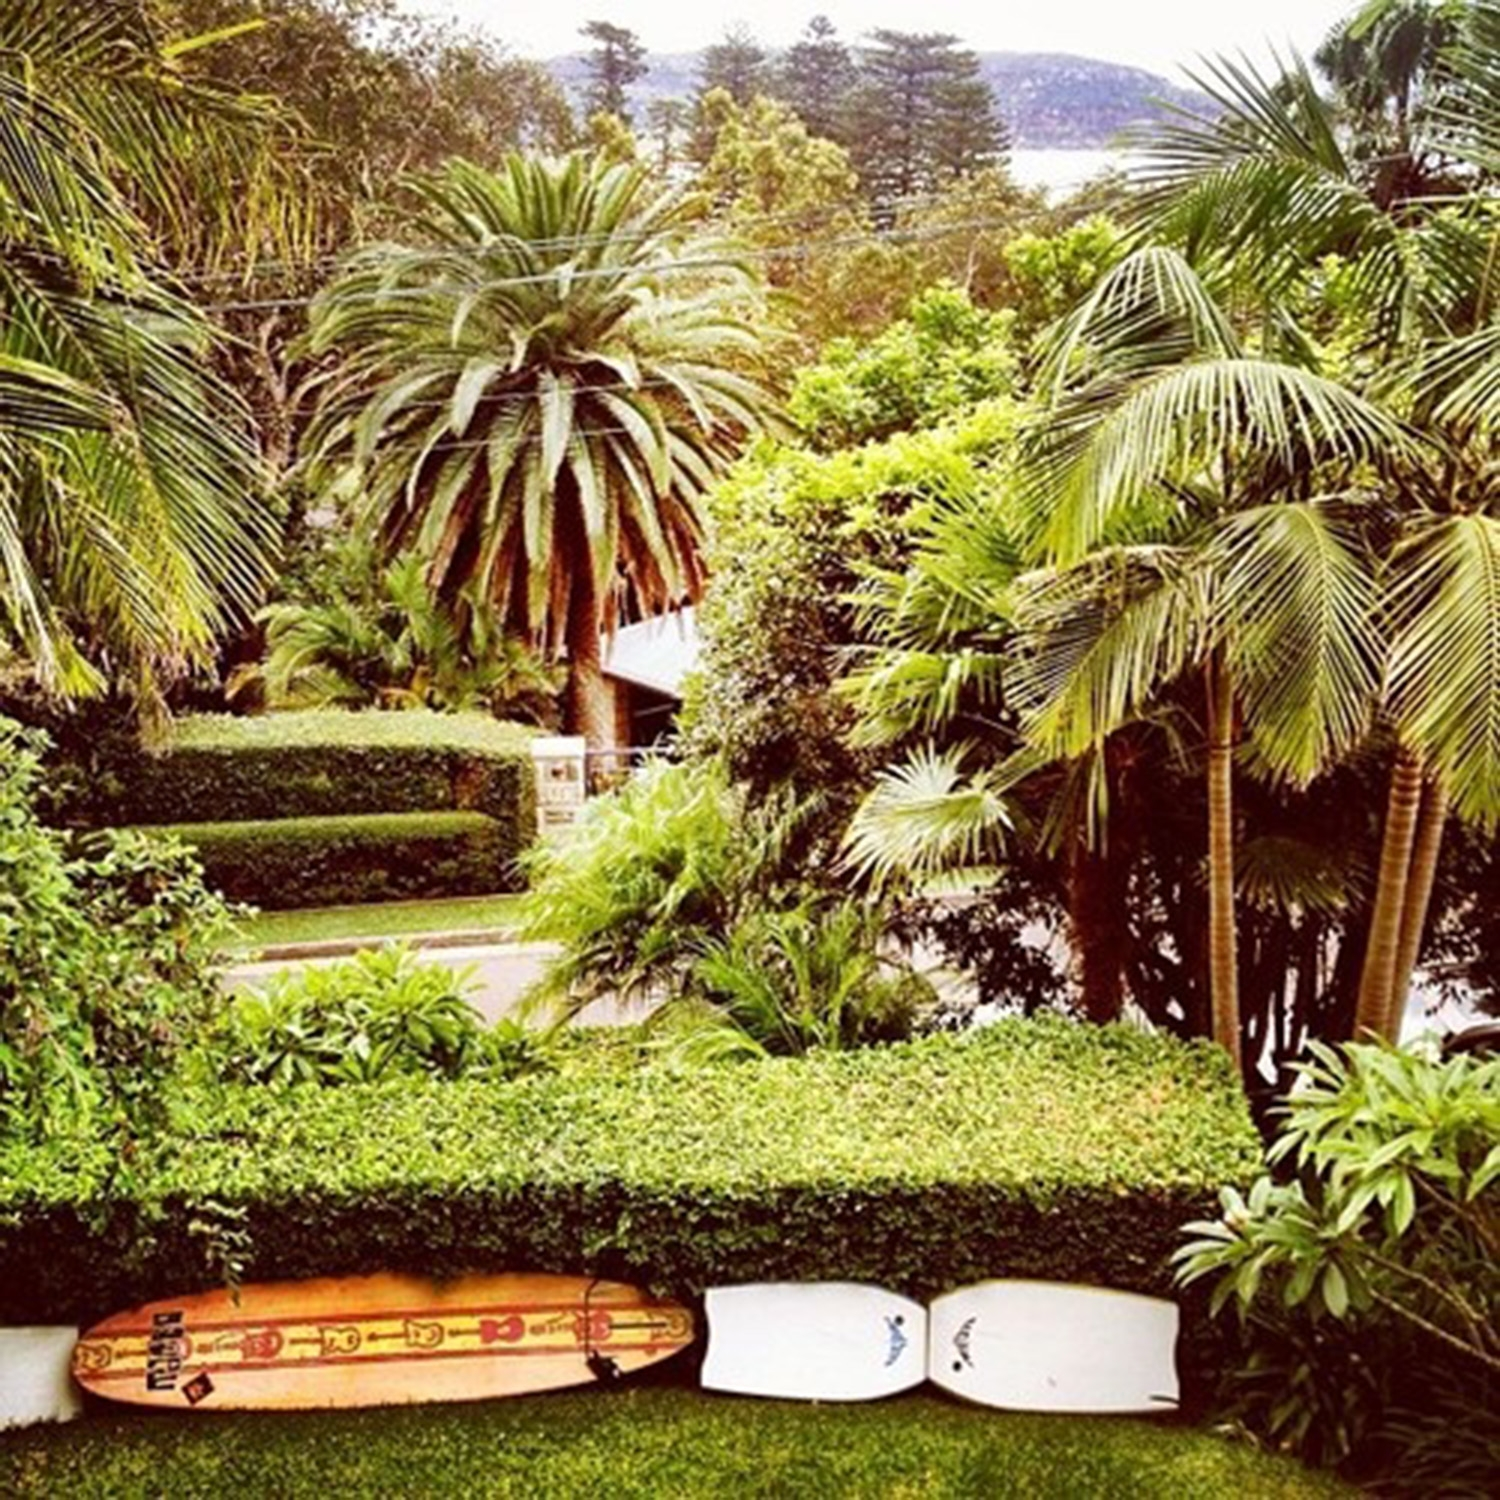 Tall palm trees, manicured hedges, a surfboard and boogie boards sit in the front garden of Barrenjoey Villa